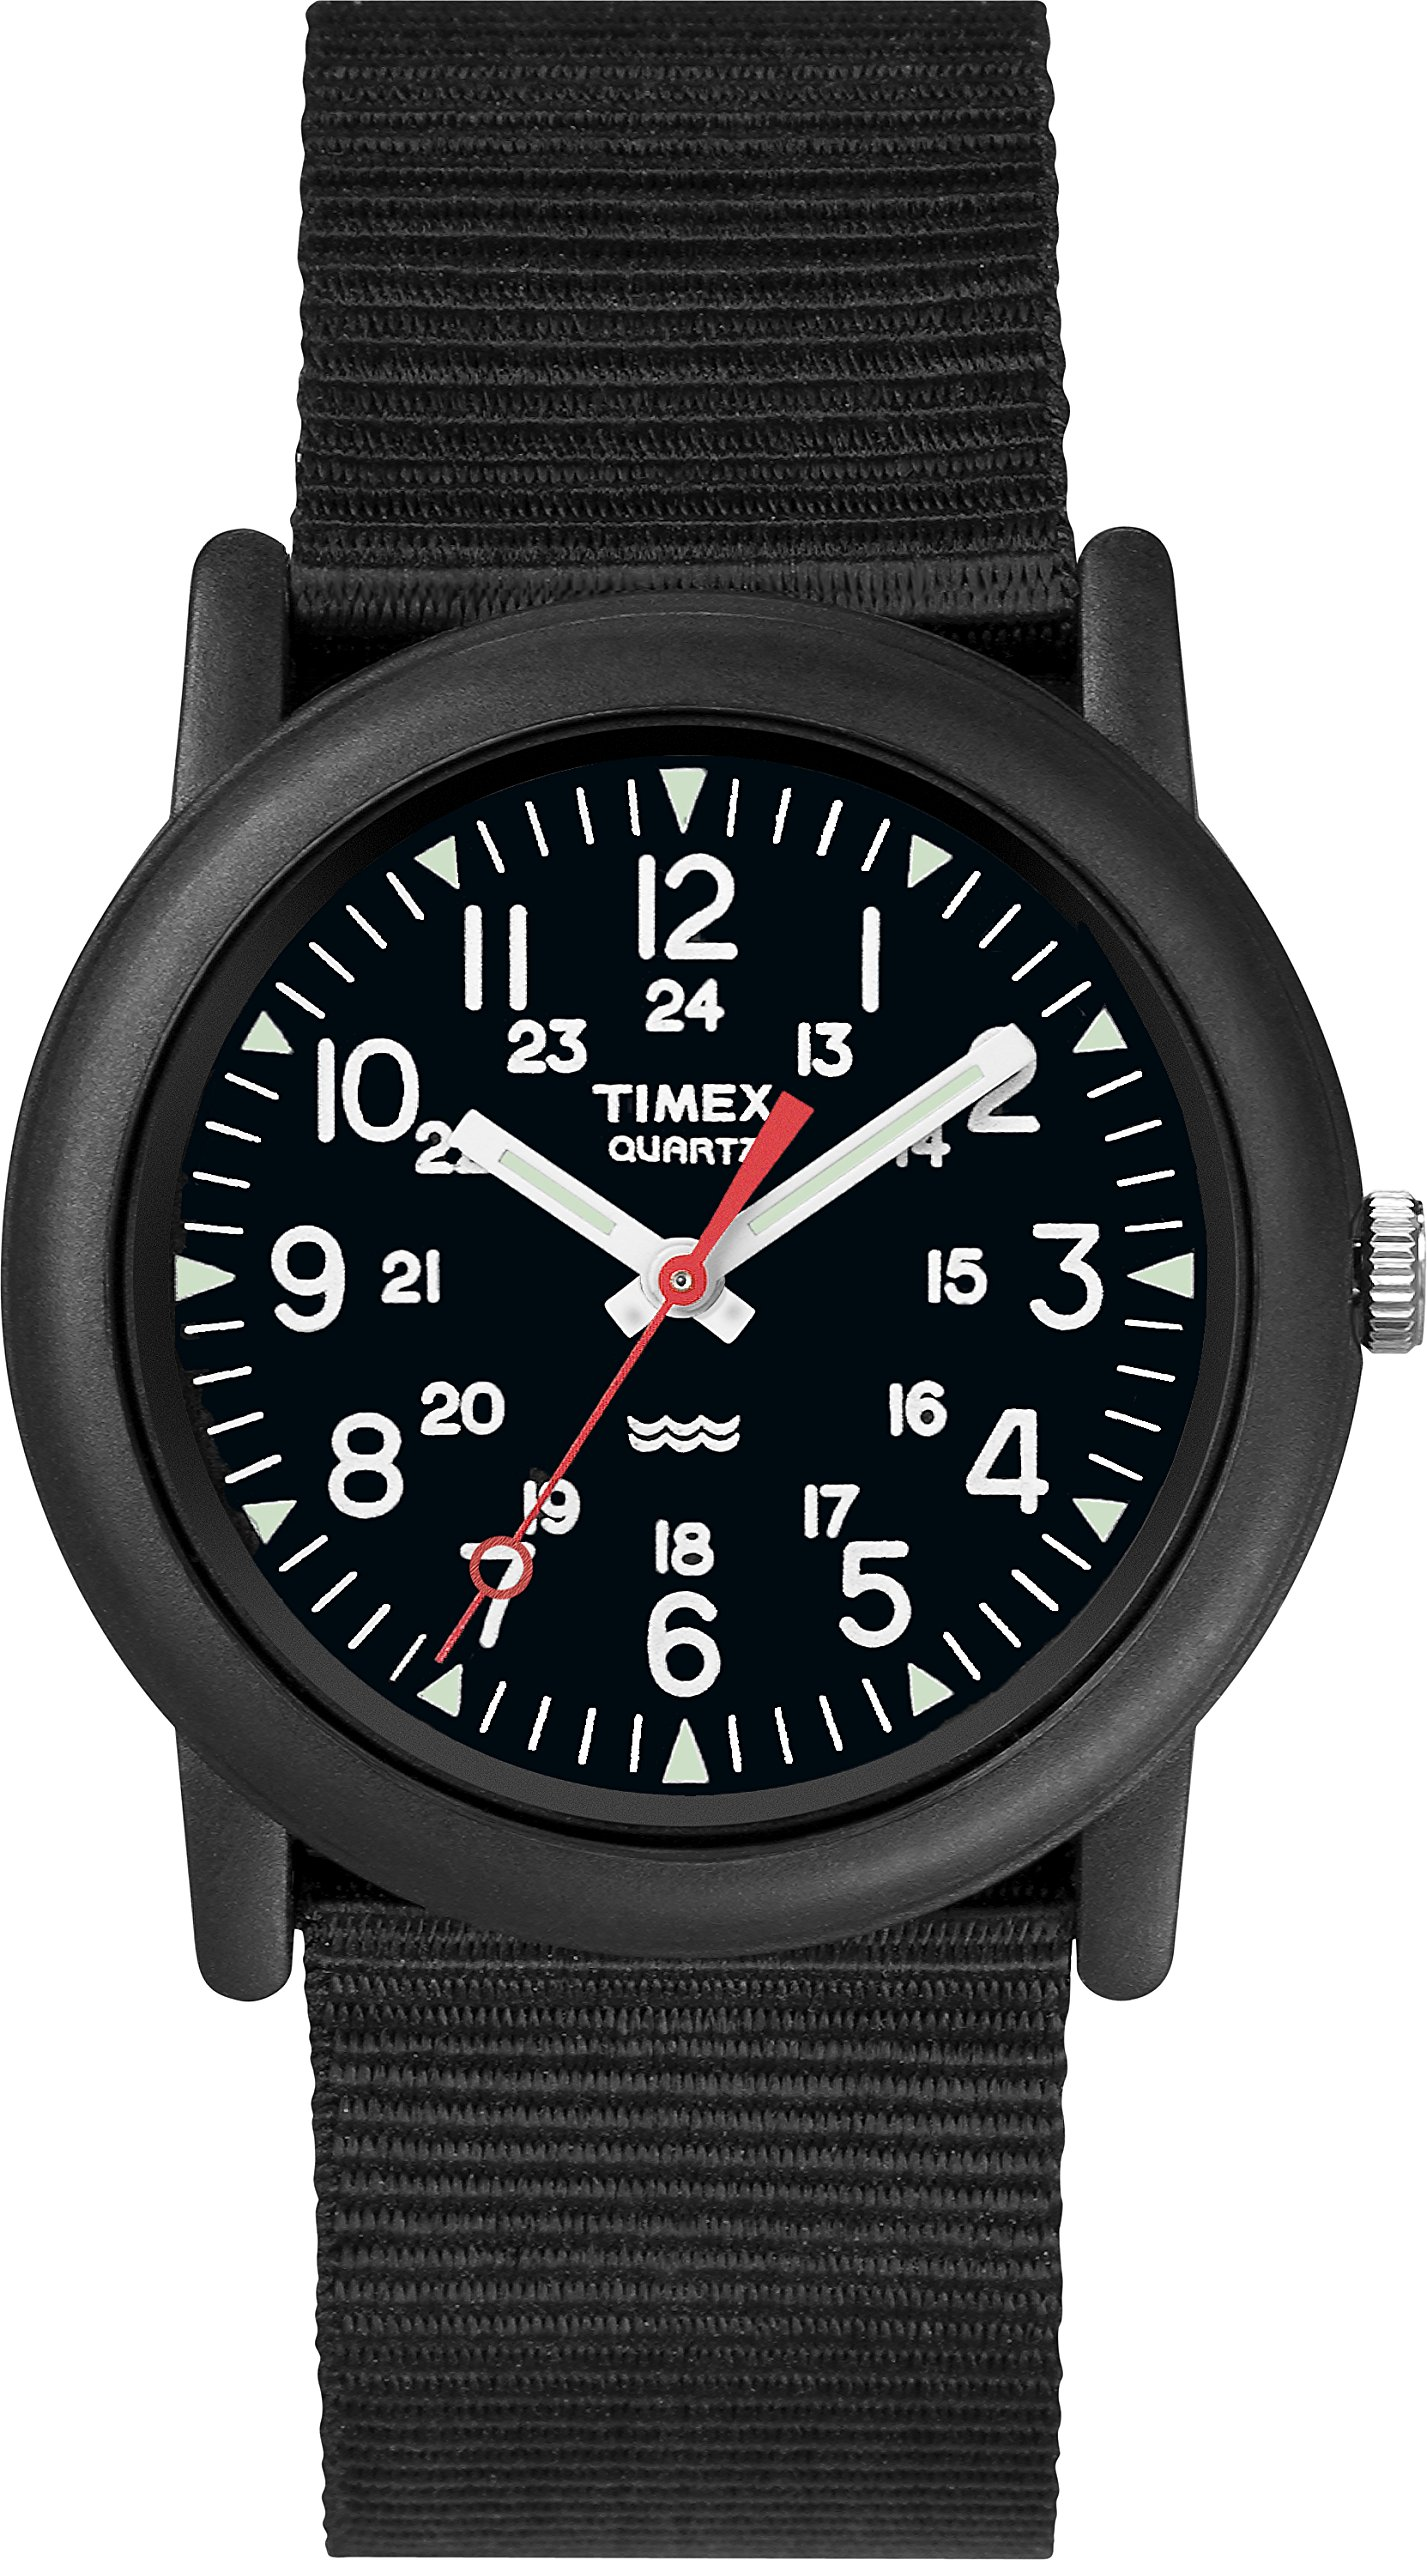 Timex Unisex Quartz Camper Watch with Dial Analogue Digital Display and Nylon Strap